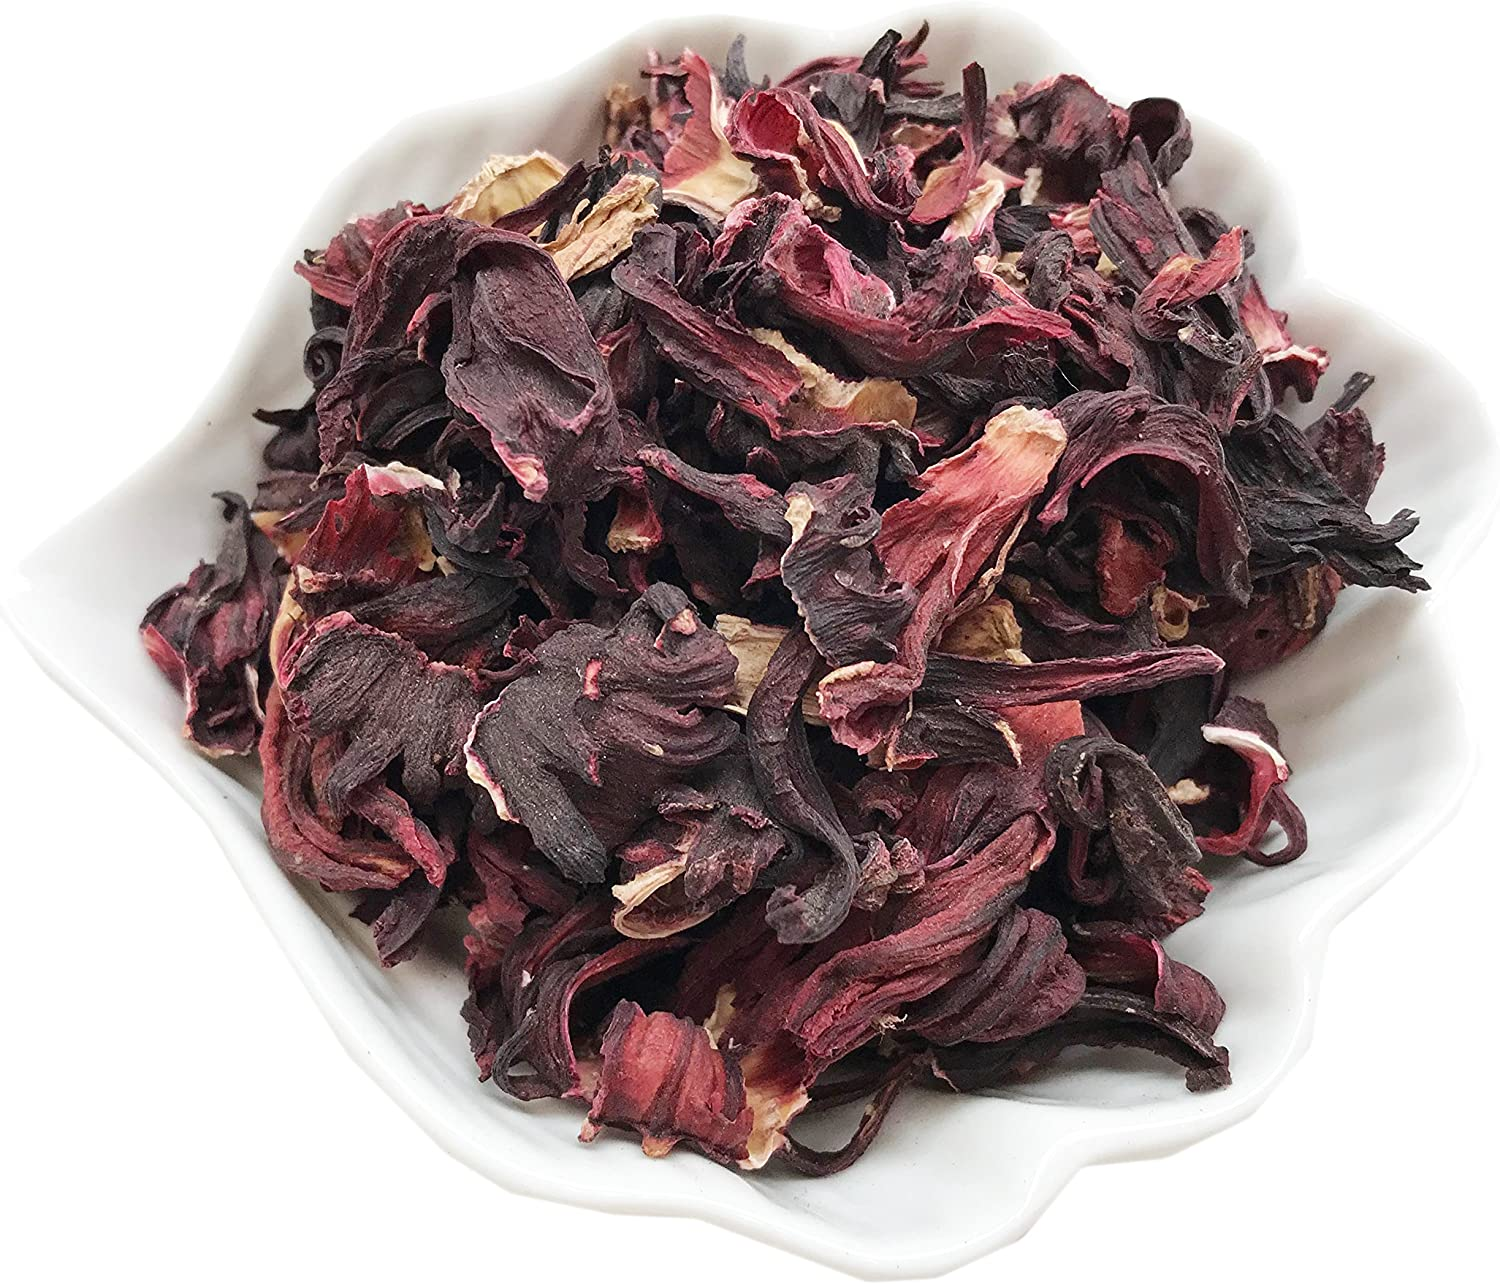 PEPPERLONELY 1 oz Organic Kosher Certified Botanical Dried Edible Hibiscus Flowers Petals (Whole)